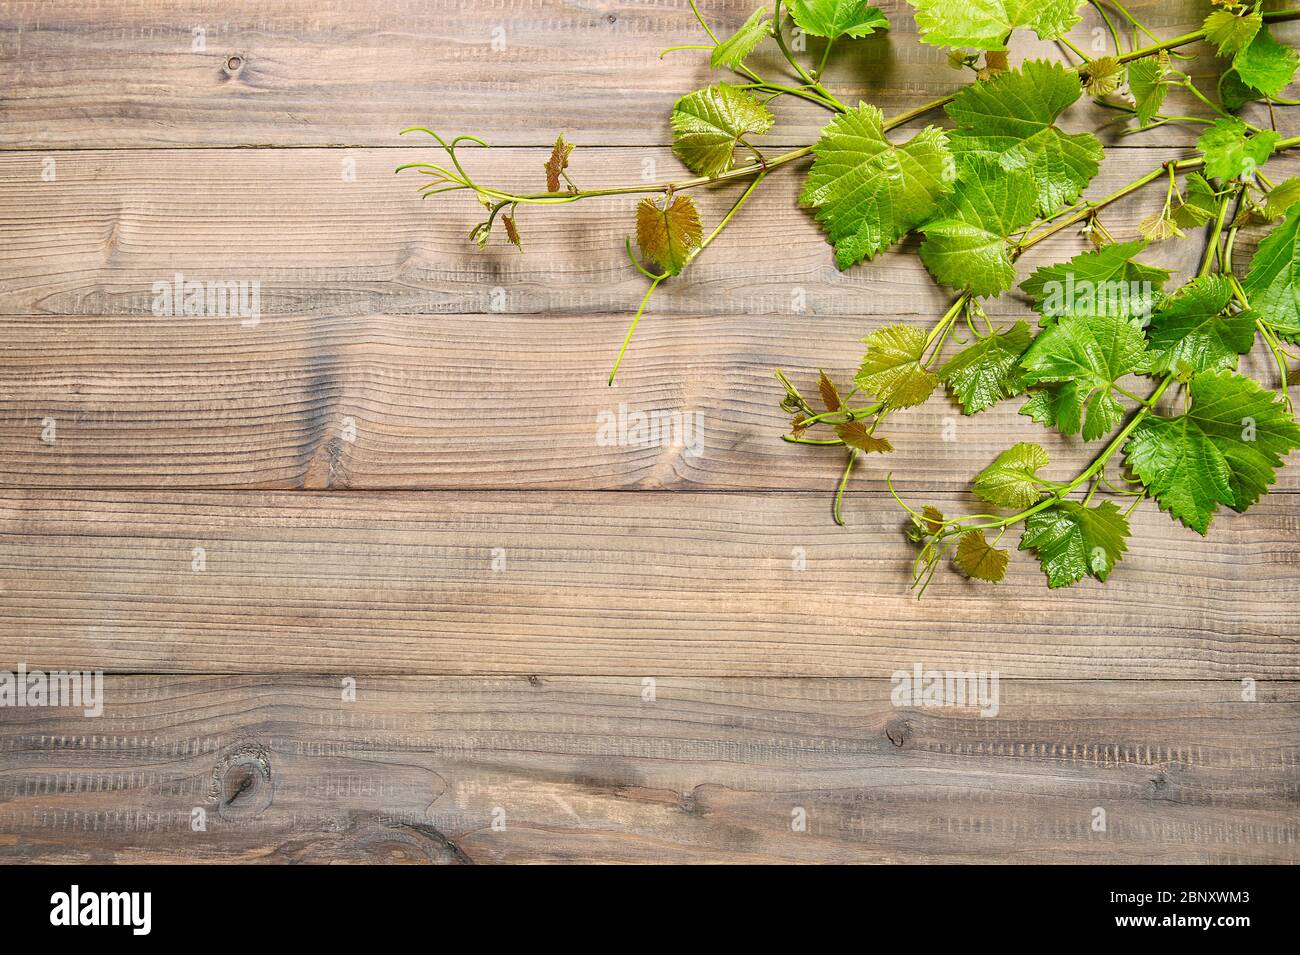 Wooden Background With Vine Leaves Border Green Grape Plant Leaf Stock Photo Alamy